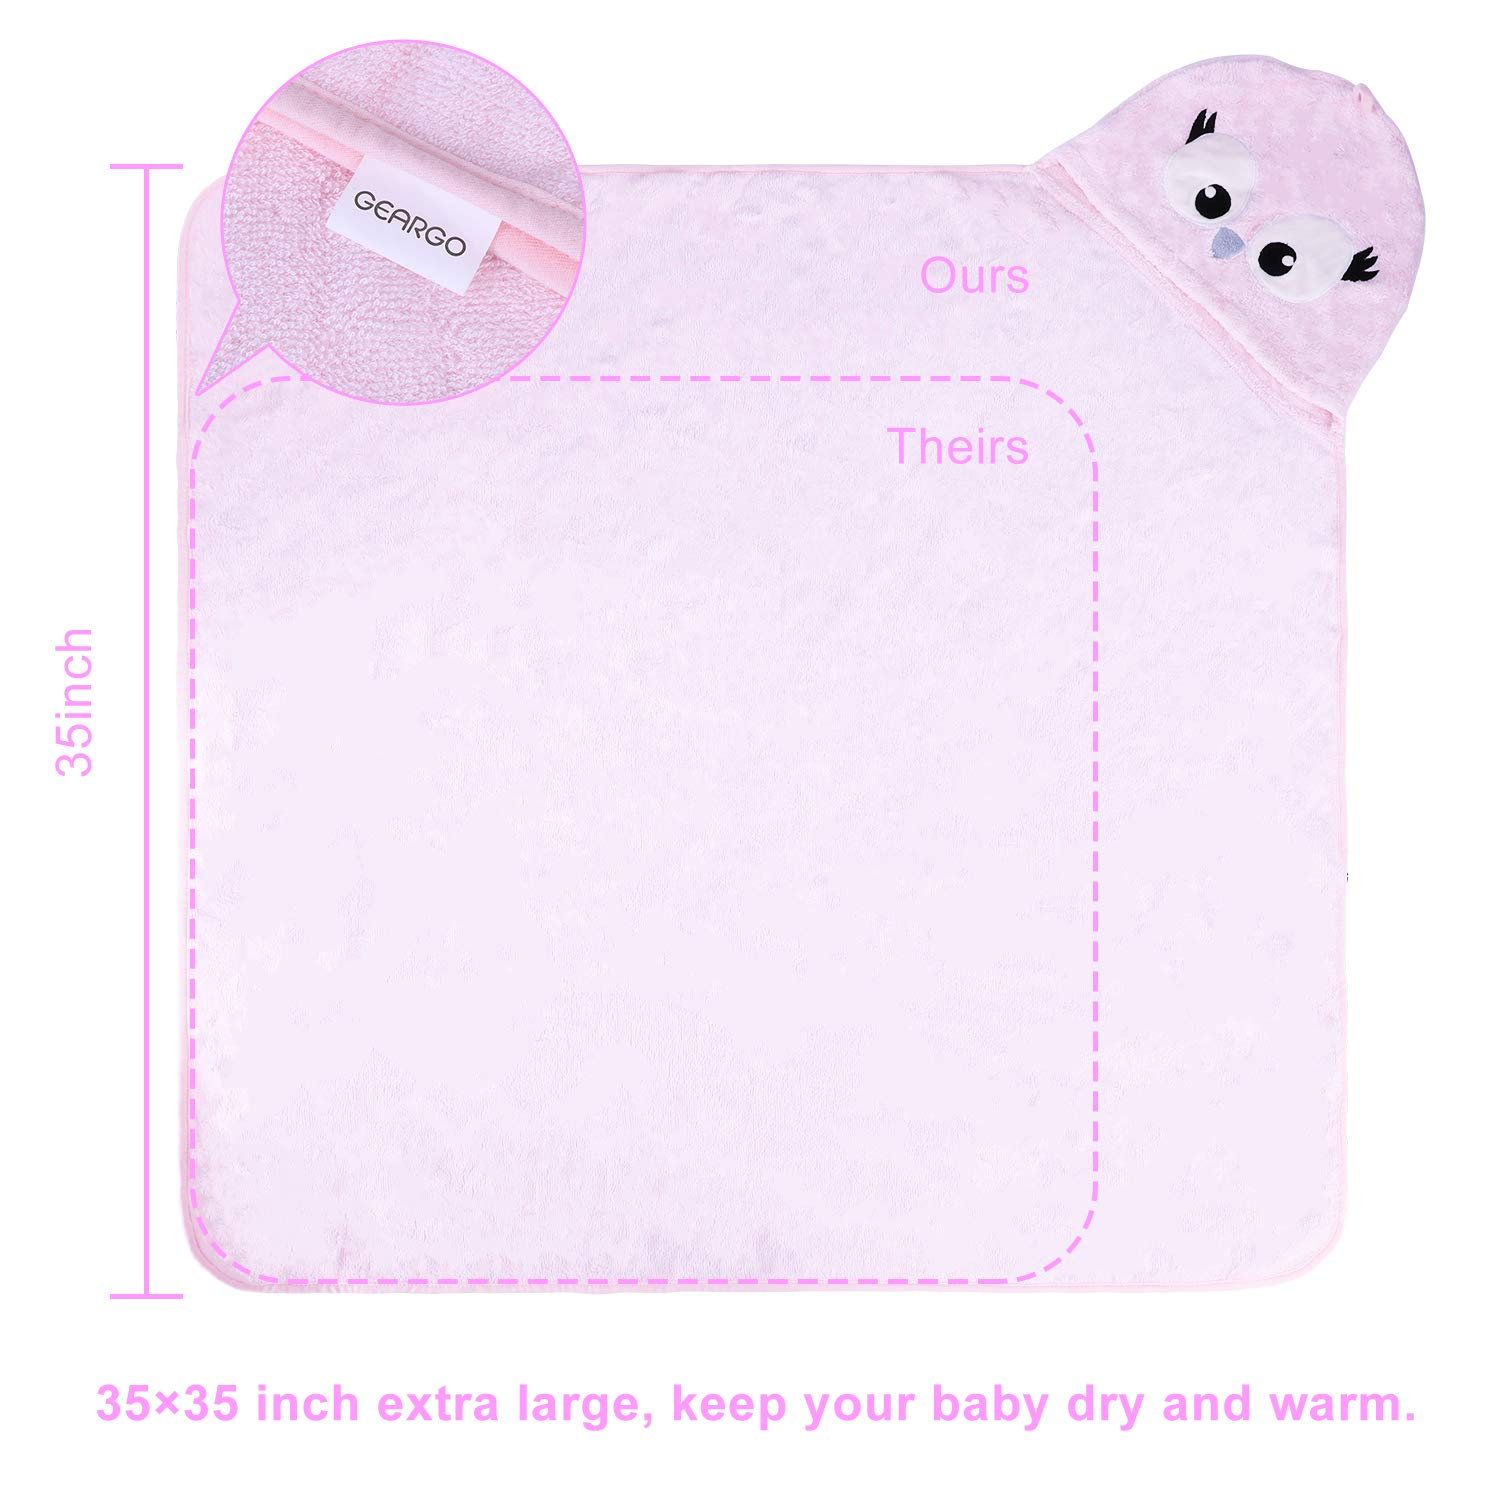 GEARGO Premium Hooded Baby Towel 100/% Organic Bamboo Baby Towels with Hood 35x35 for Newborns Infants Toddlers /& Kids Baby Shower Gift